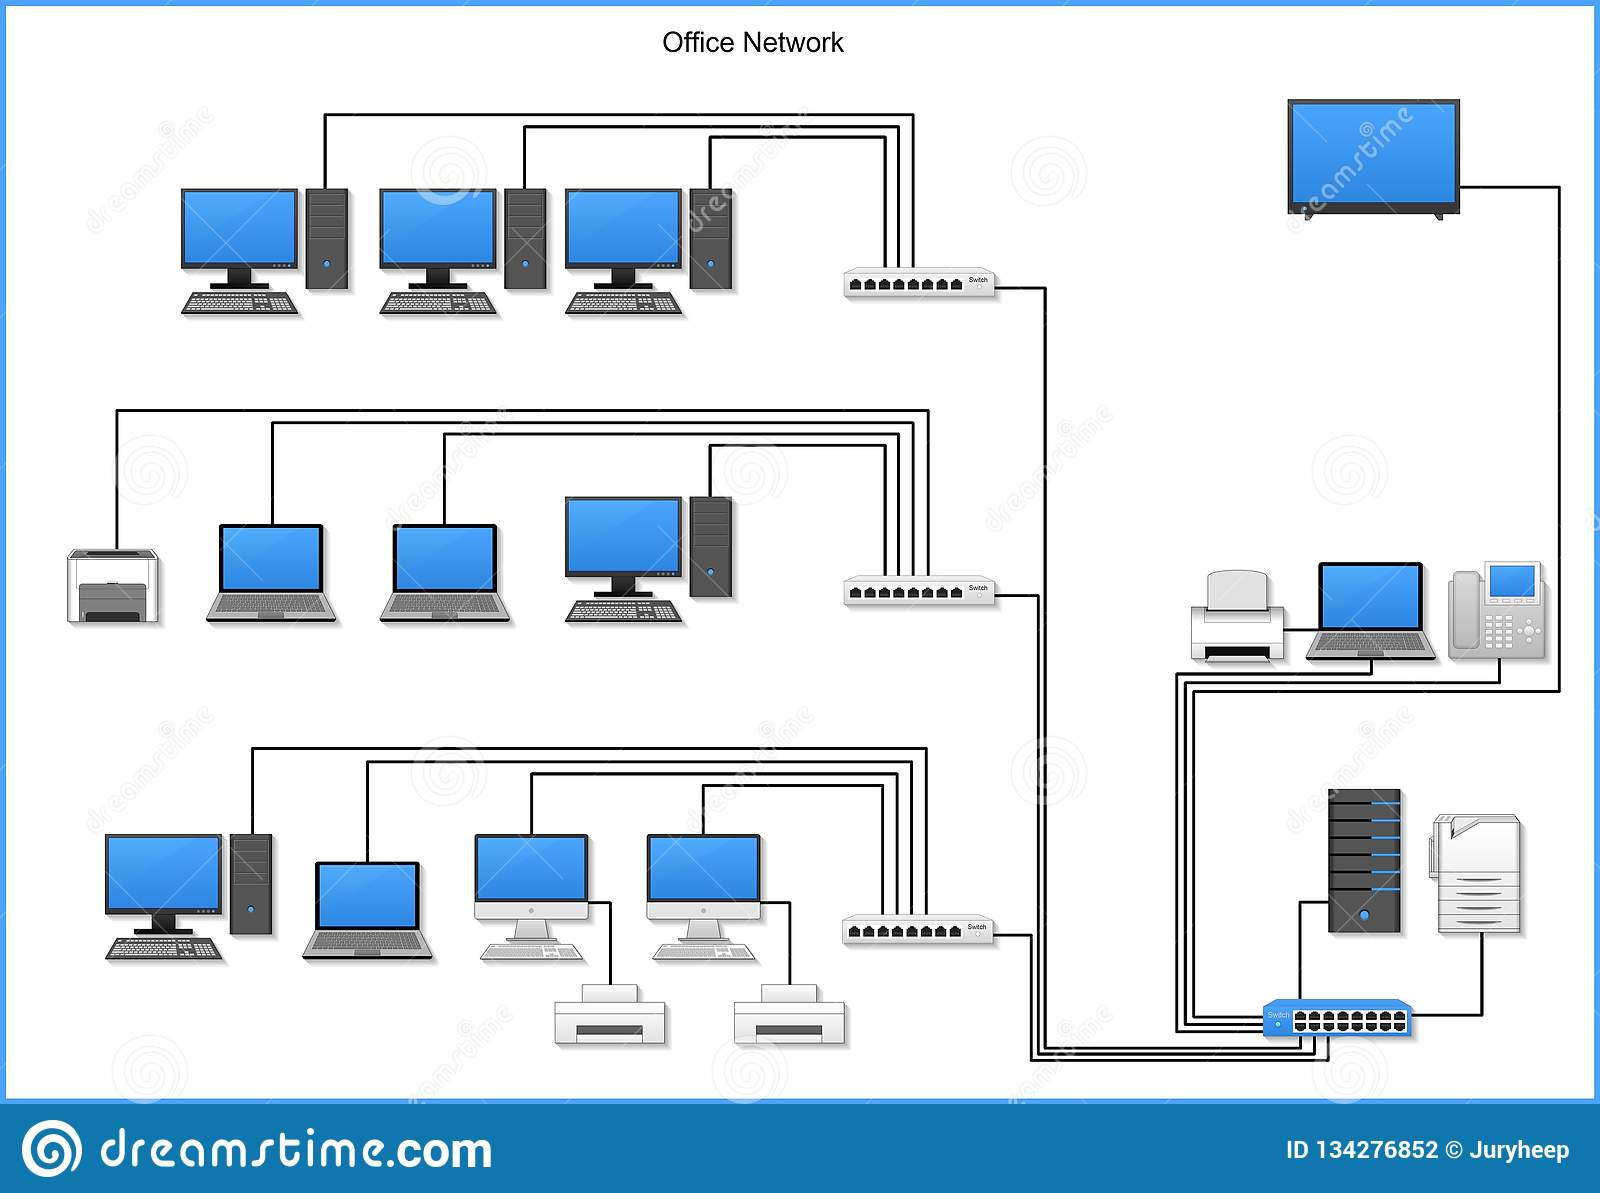 Office Network Diagram With Devices  Buildings On White